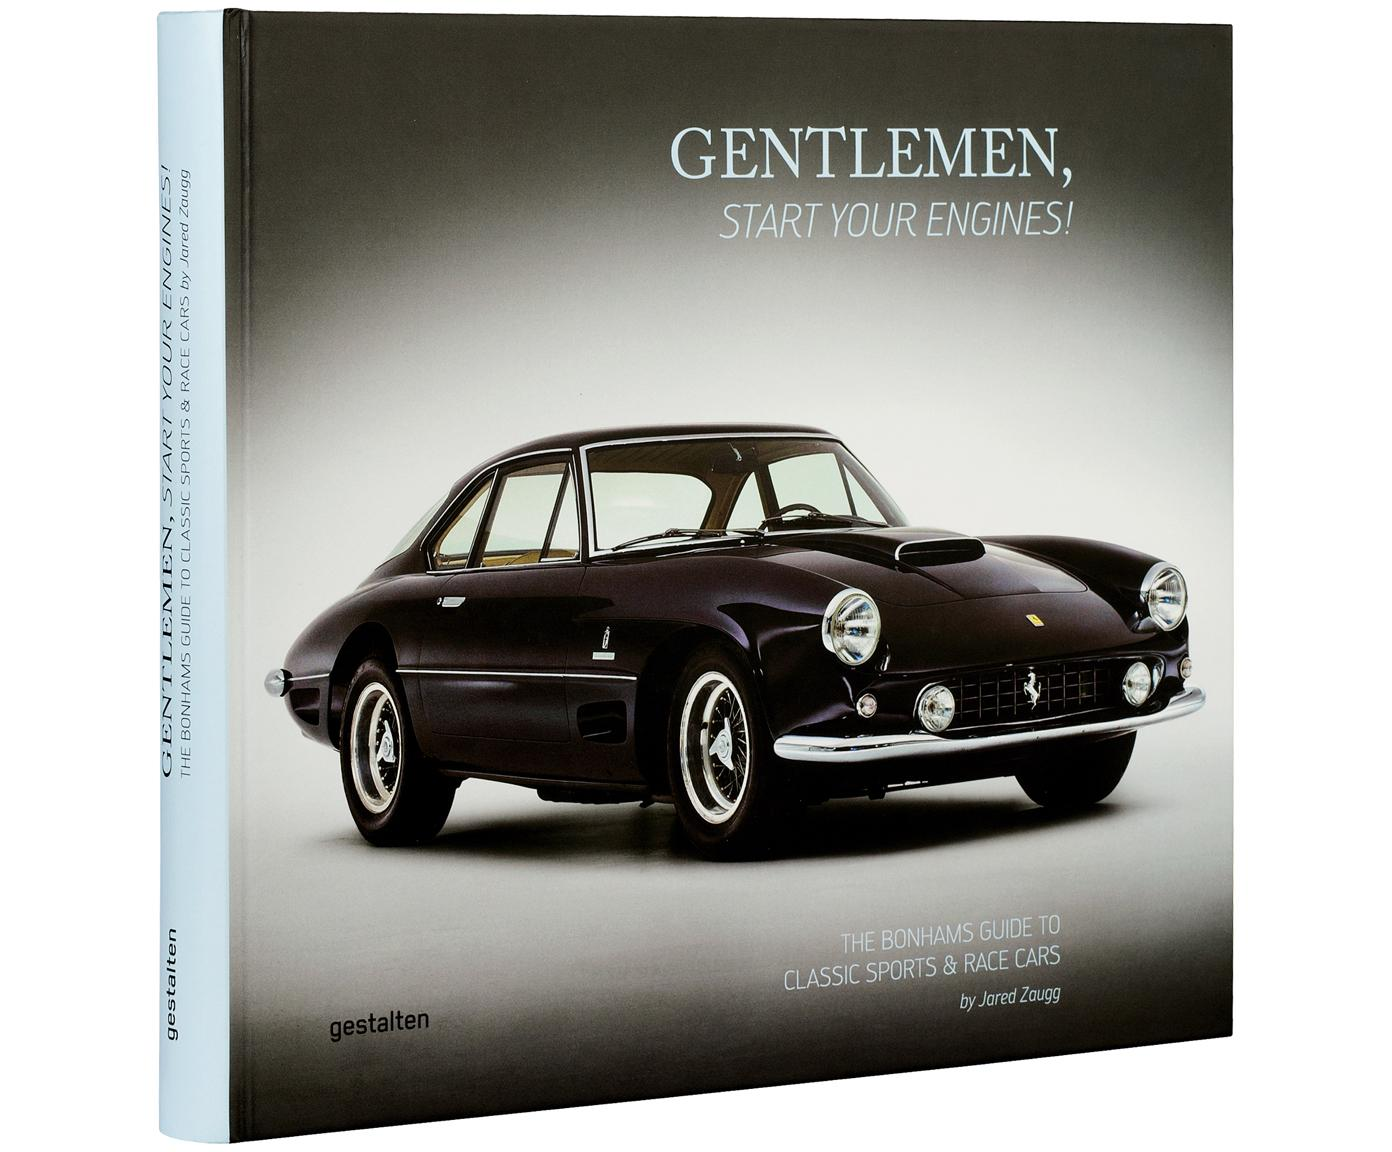 Libro ilustrado Gentlemen, start your engines!, Papel, tapa dura, Multicolor, An 27 x L 30 cm